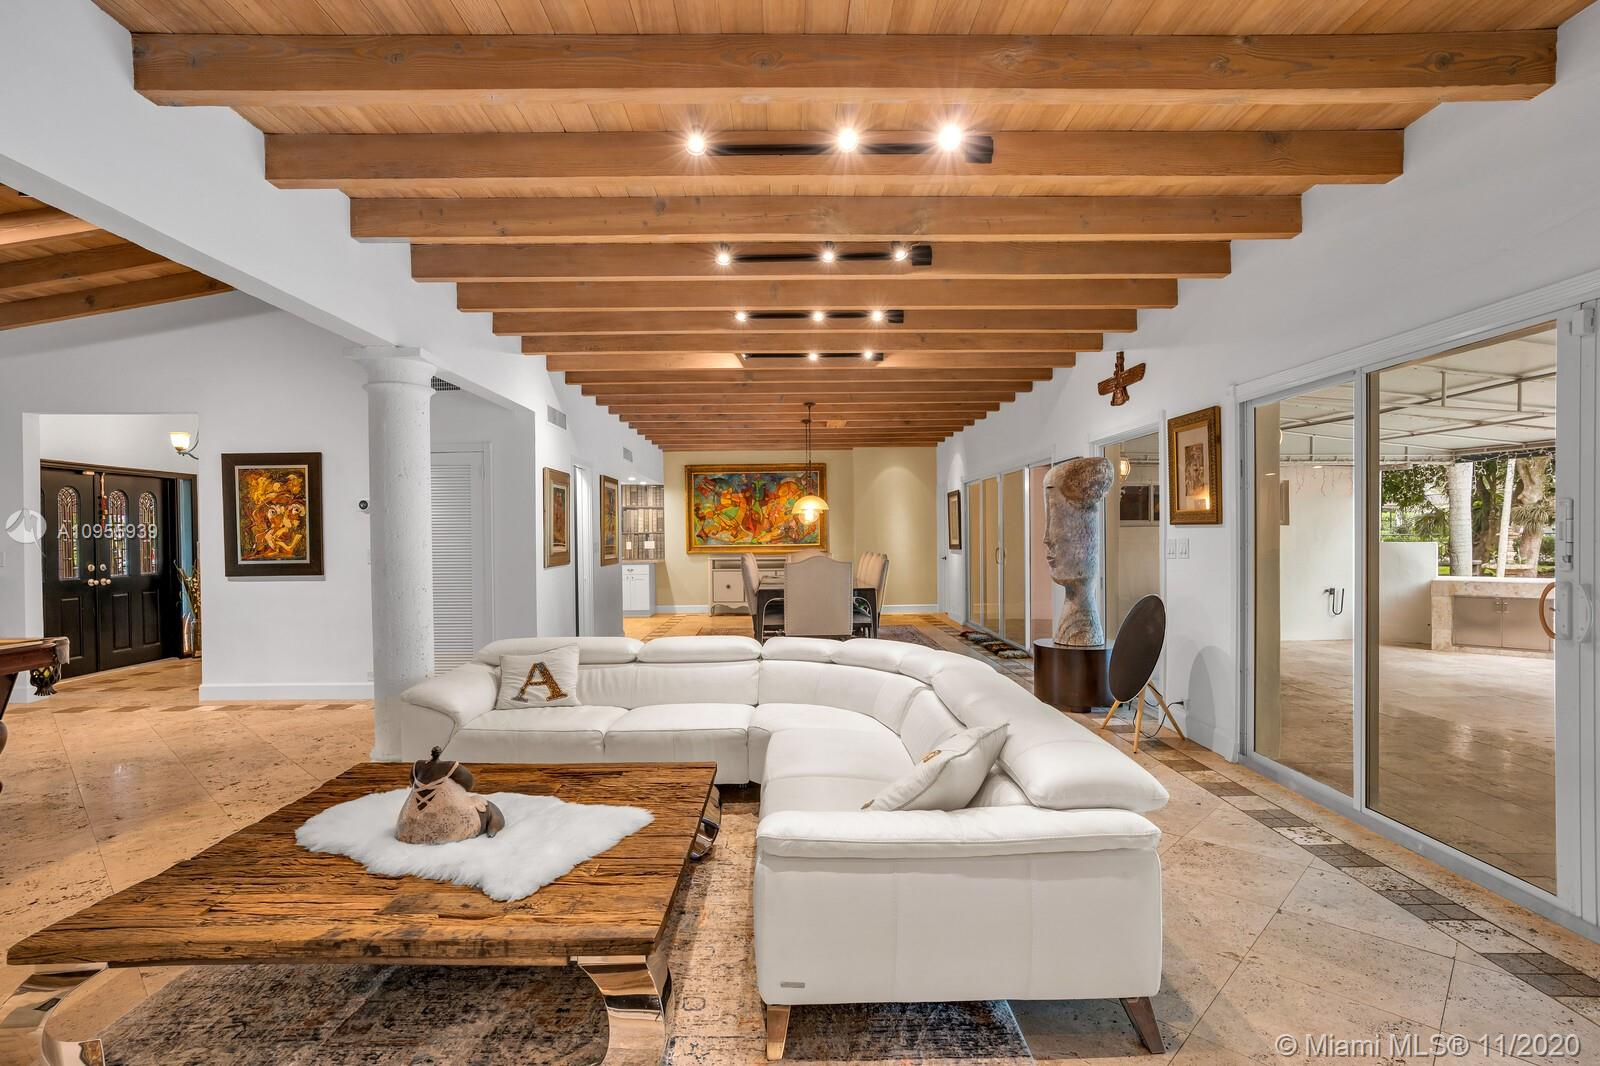 A true GEM, a UNIQUE Lot of 65,340 Sq.FT with 5,637 Sq.FT one story home in South Miami. Travertine floors throughout, beautiful White Oak wood ceiling, fire place, open floor through the living room, dining room and the kitchen. 4 Bedrooms, 4 Bathrooms, Guest House with separate entrance, spacious kitchen, Laundry room, very large patio surrounded by lush landscaping with multiple fruit trees such as 6 Mango and 2 avocado Trees. Fenced area dedicated to your Farm/Ranch. Zoning allows to have a HORSE, goats, sheep, chickens. Enough land to have your own garden and grow your own vegetables. Peaceful neighborhood close to Dadeland Mall, University of Miami, 20 min from Downtown Miami and to Miami International Airport, Top Rated schools. Furniture, FINE ART negotiable.